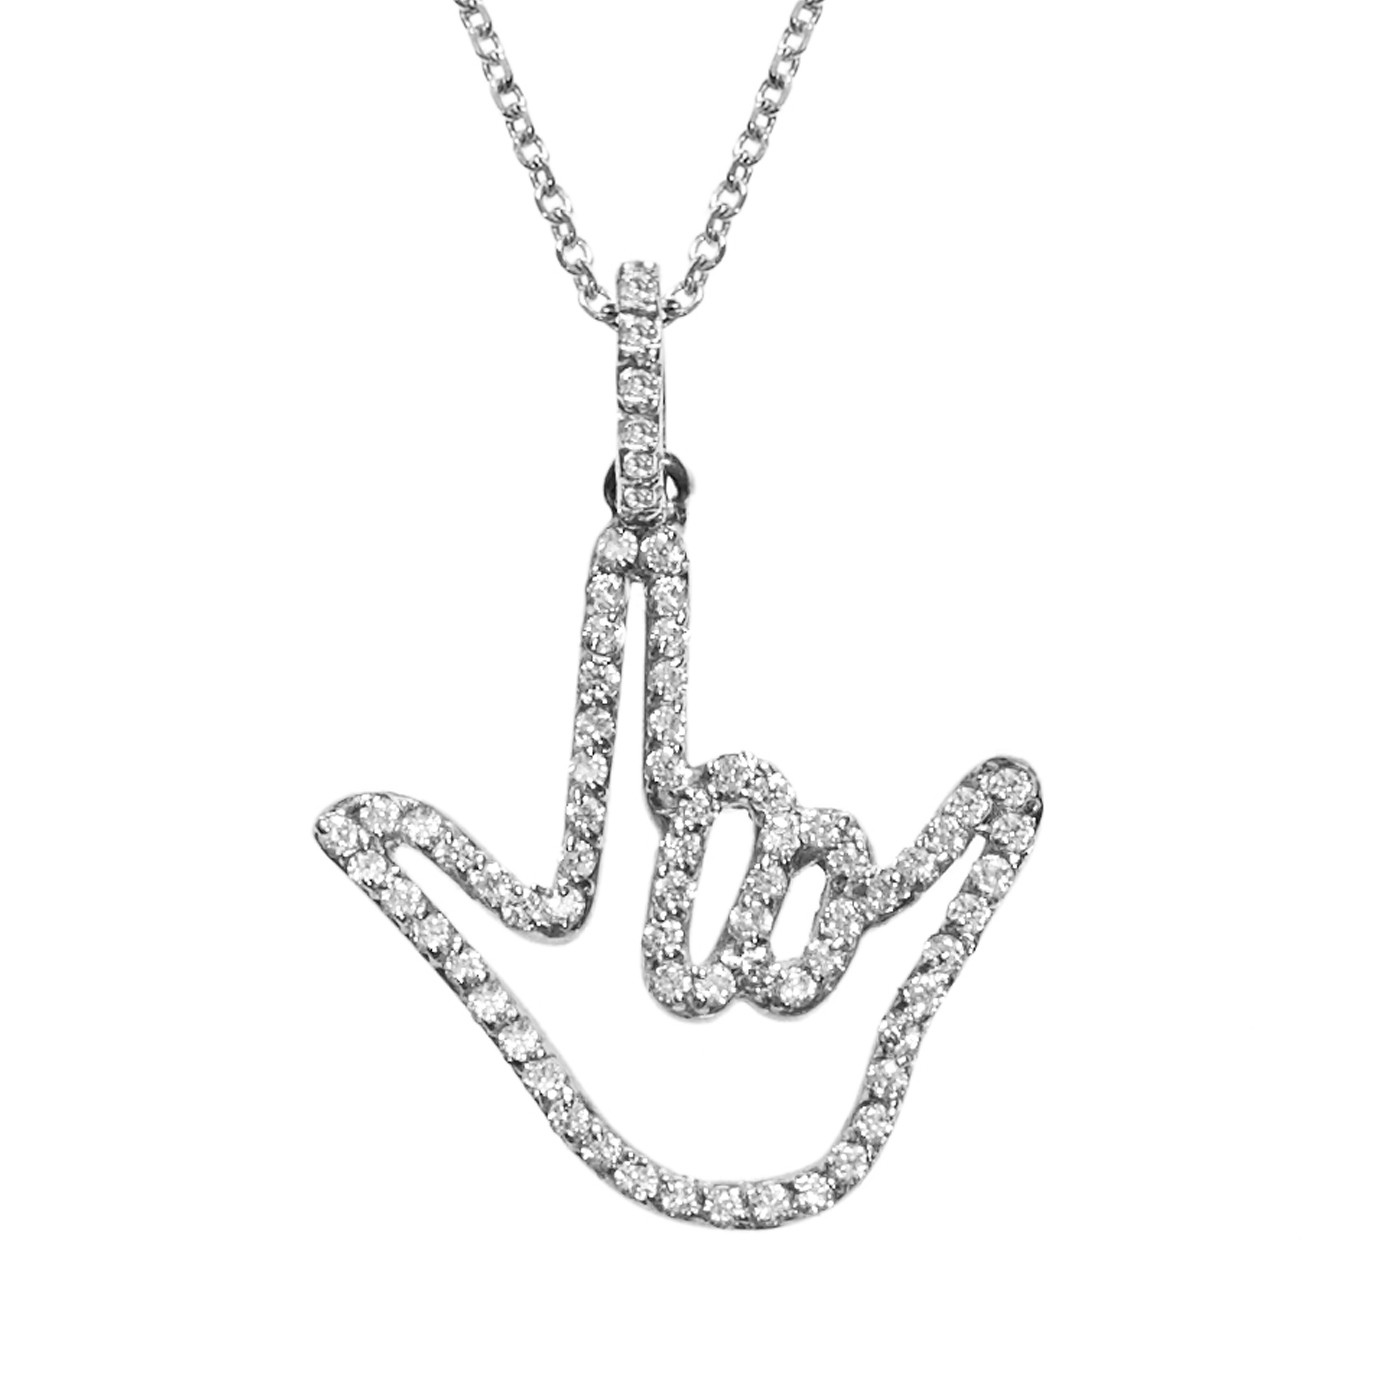 White Solid Gold Love Sign™ Pendant Necklace with Diamonds starting at $1,475.00